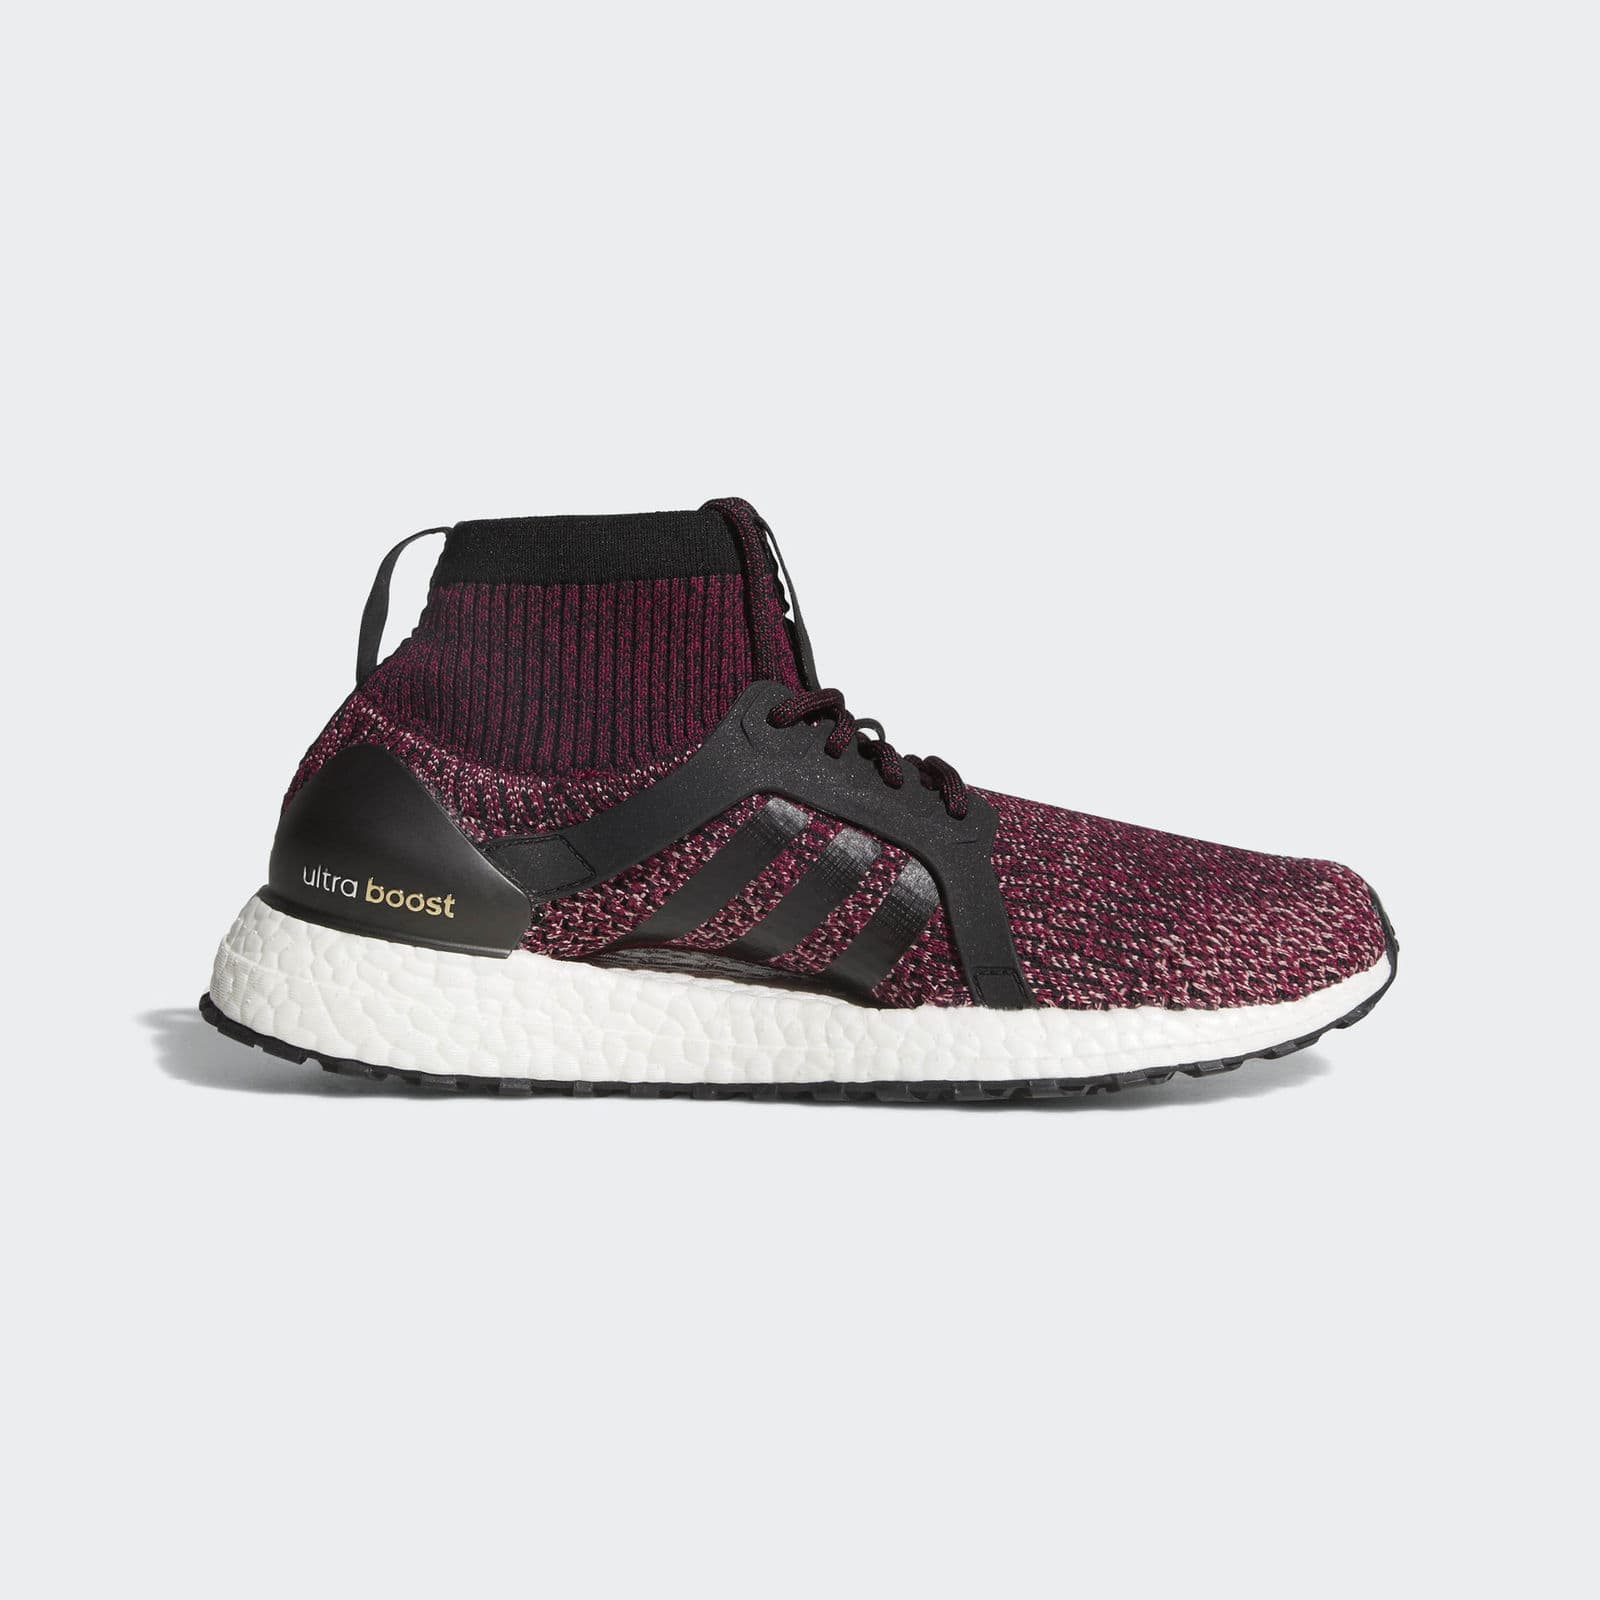 39e8d41b54249 adidas Ultraboost  Women s X Clima or X All Terrain Shoes ...